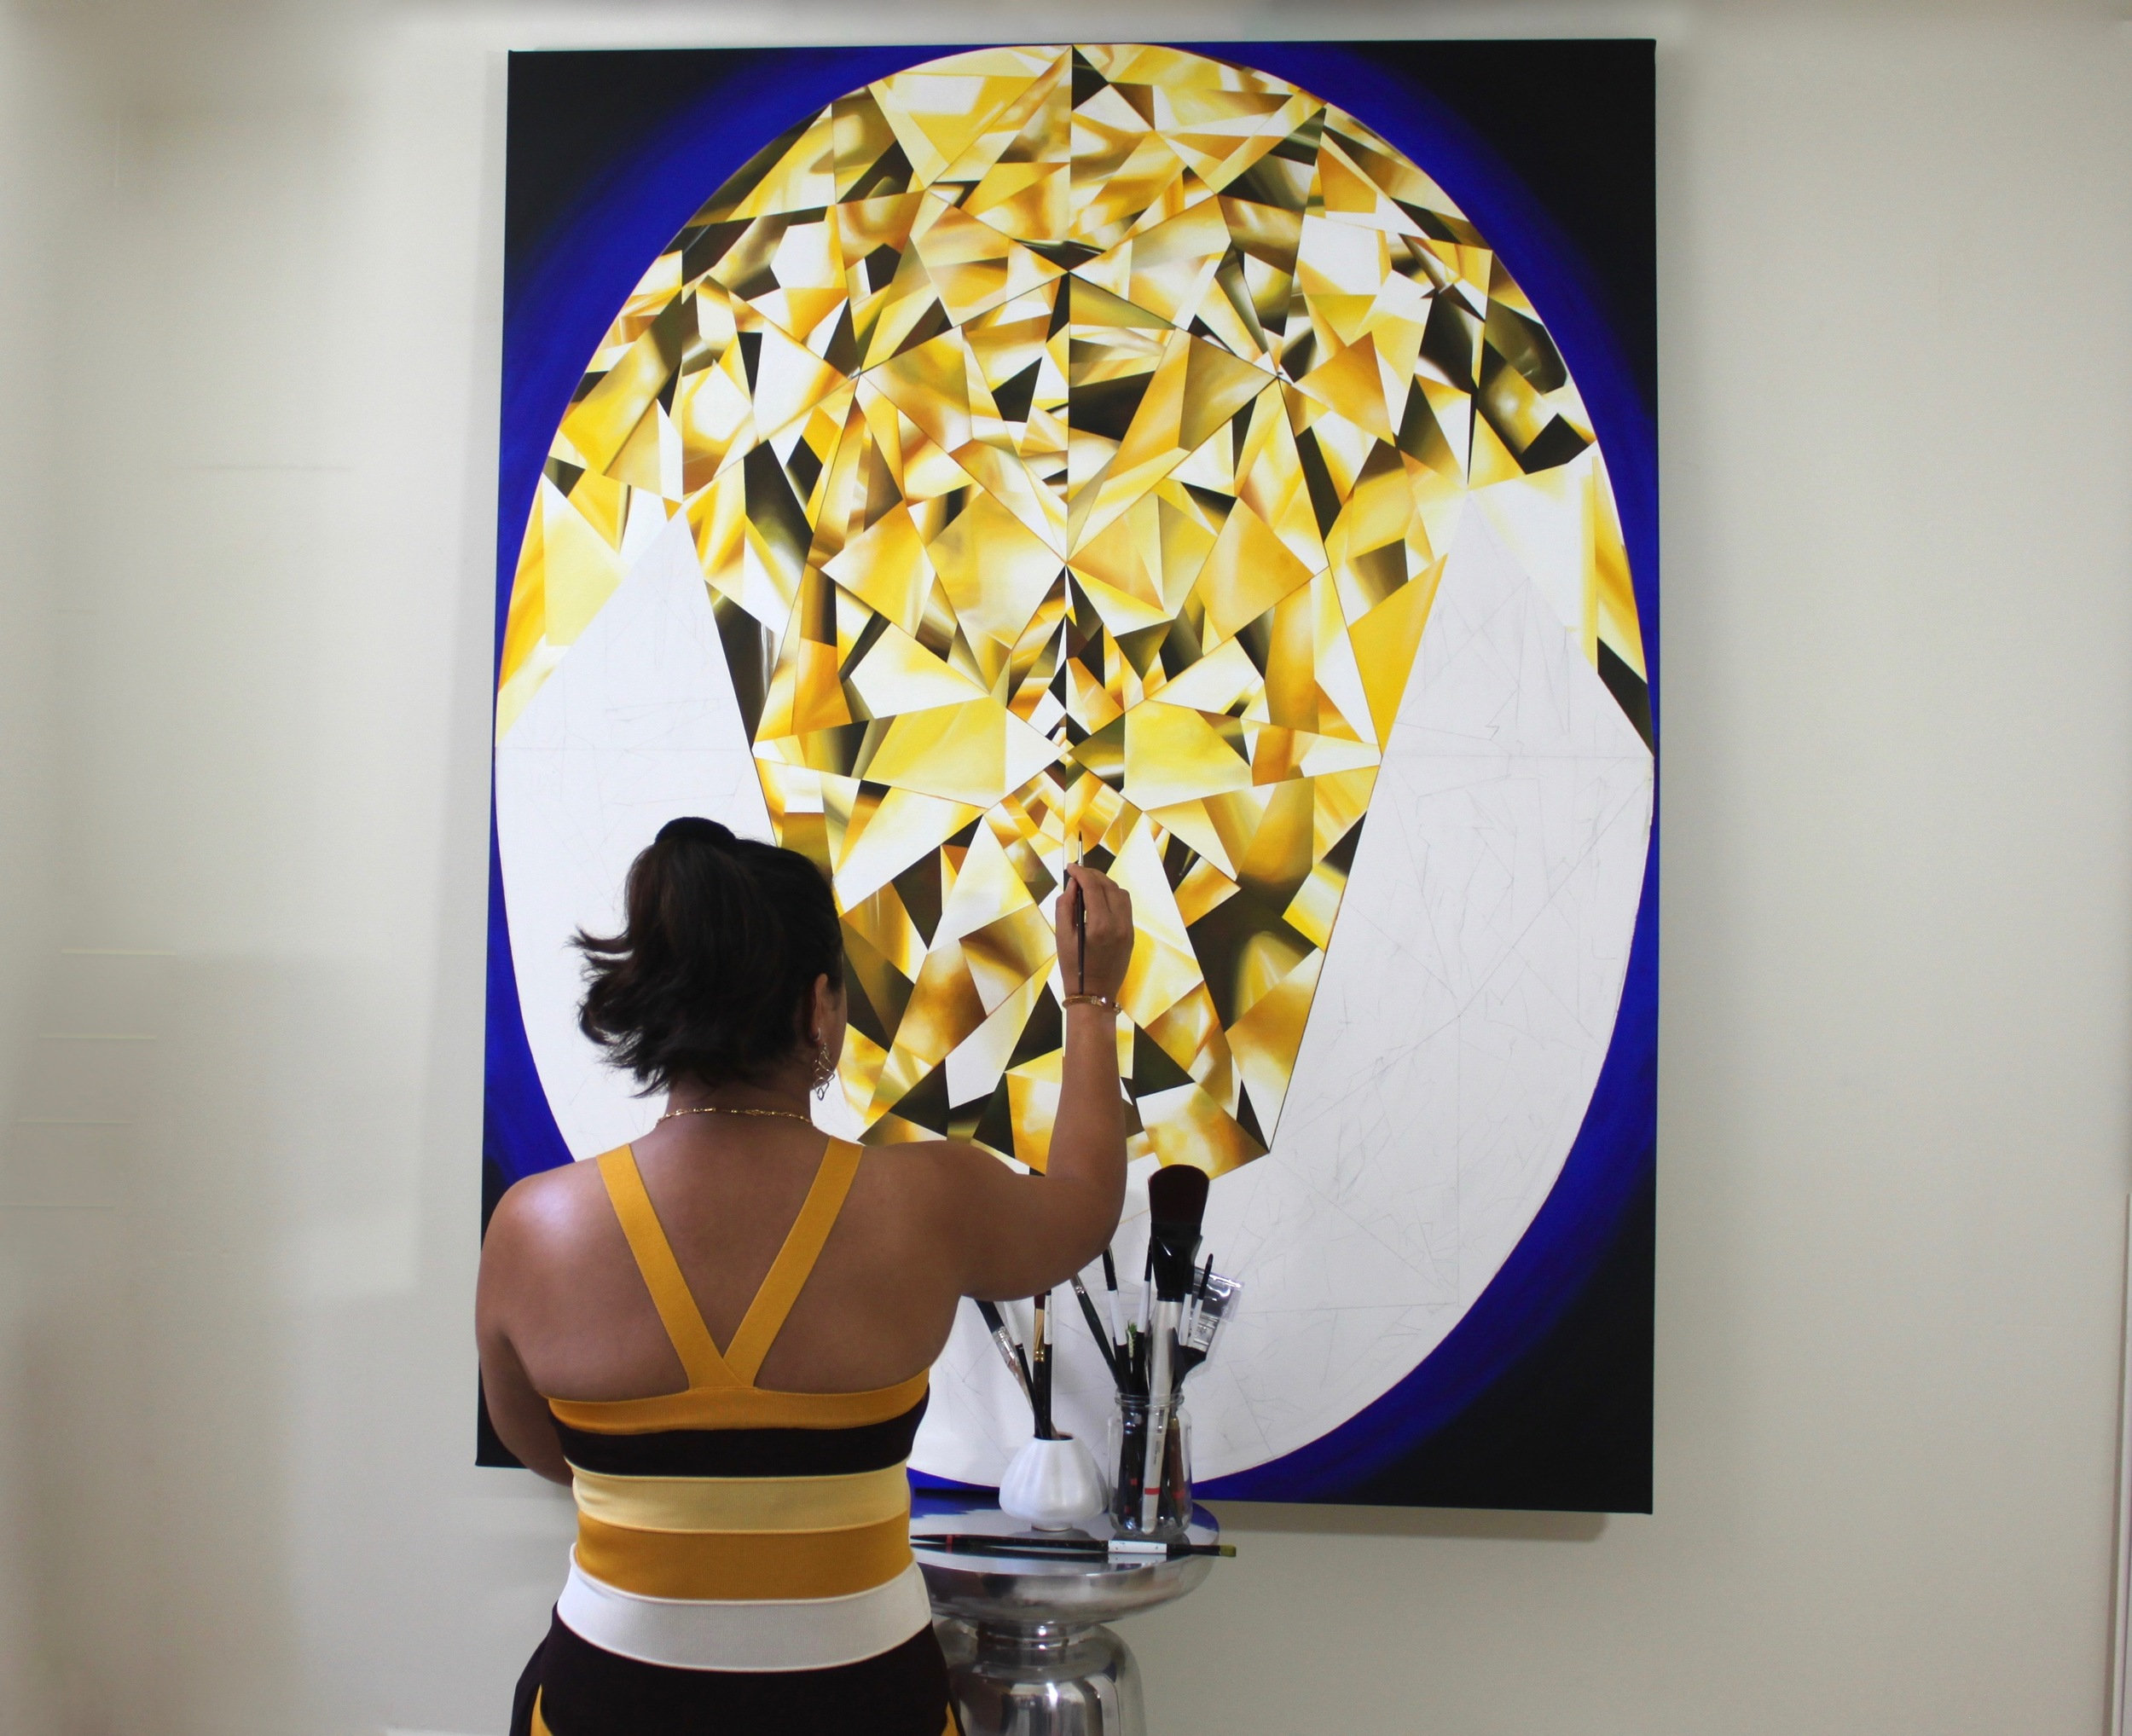 Making of 'The Portrait of Luminosity' - Portrait of an Oval Cut Yellow Diamond. 60 x 48 inches. Acrylic on Canvas. ©Reena Ahluwalia